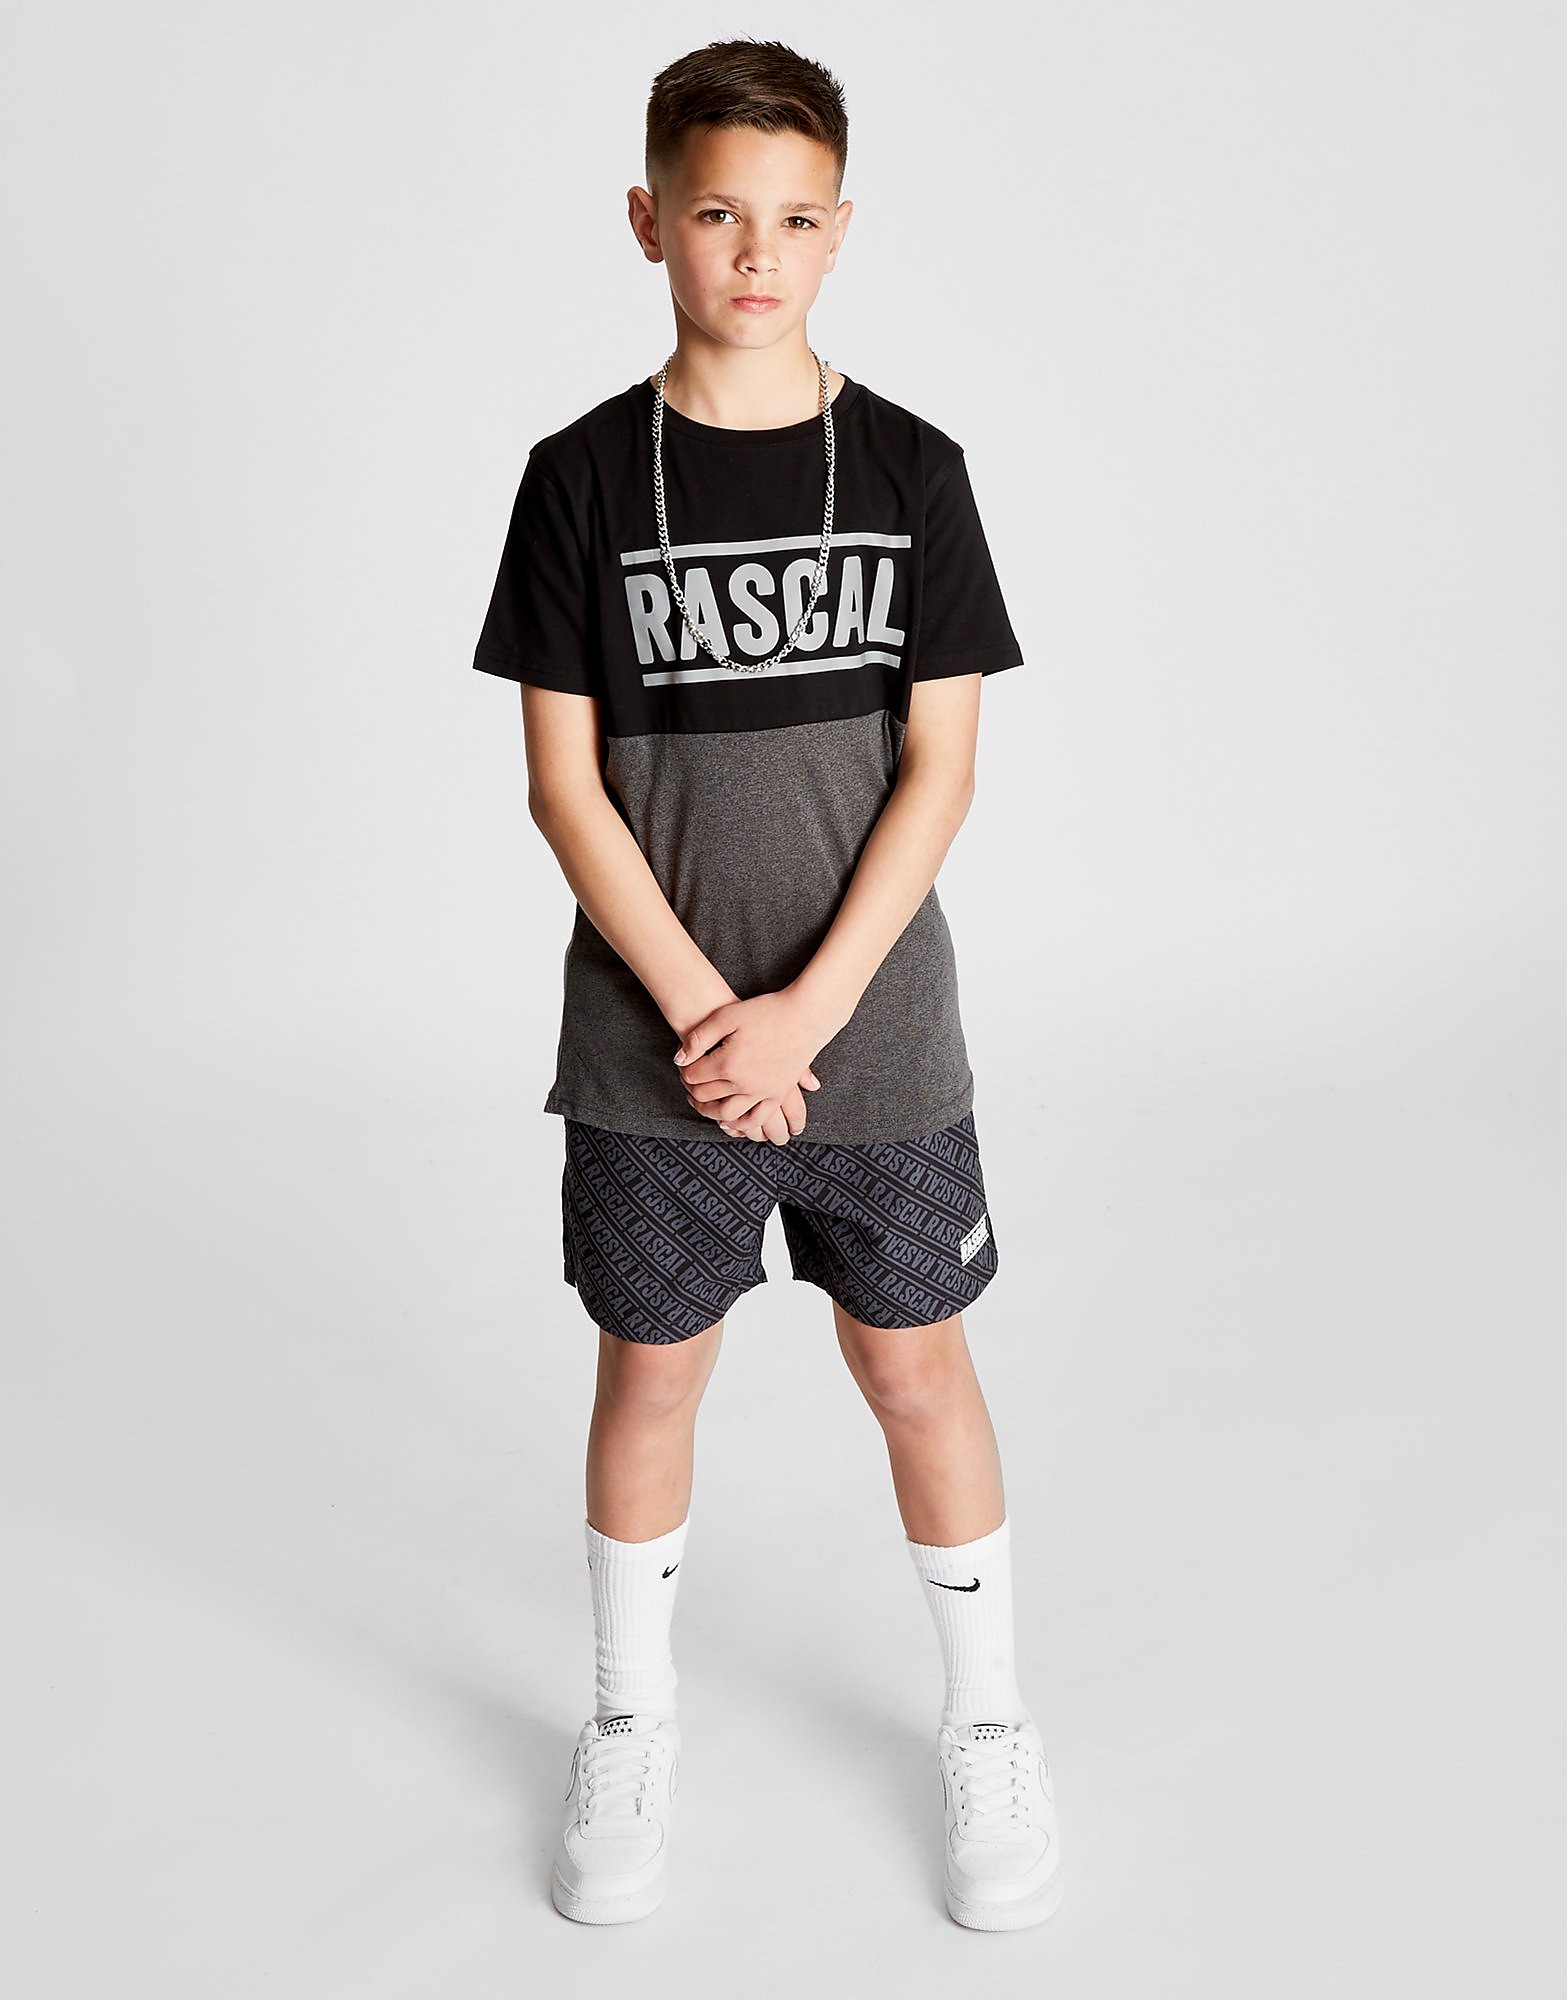 Rascal Laguna Colour Block T-Shirt Junior